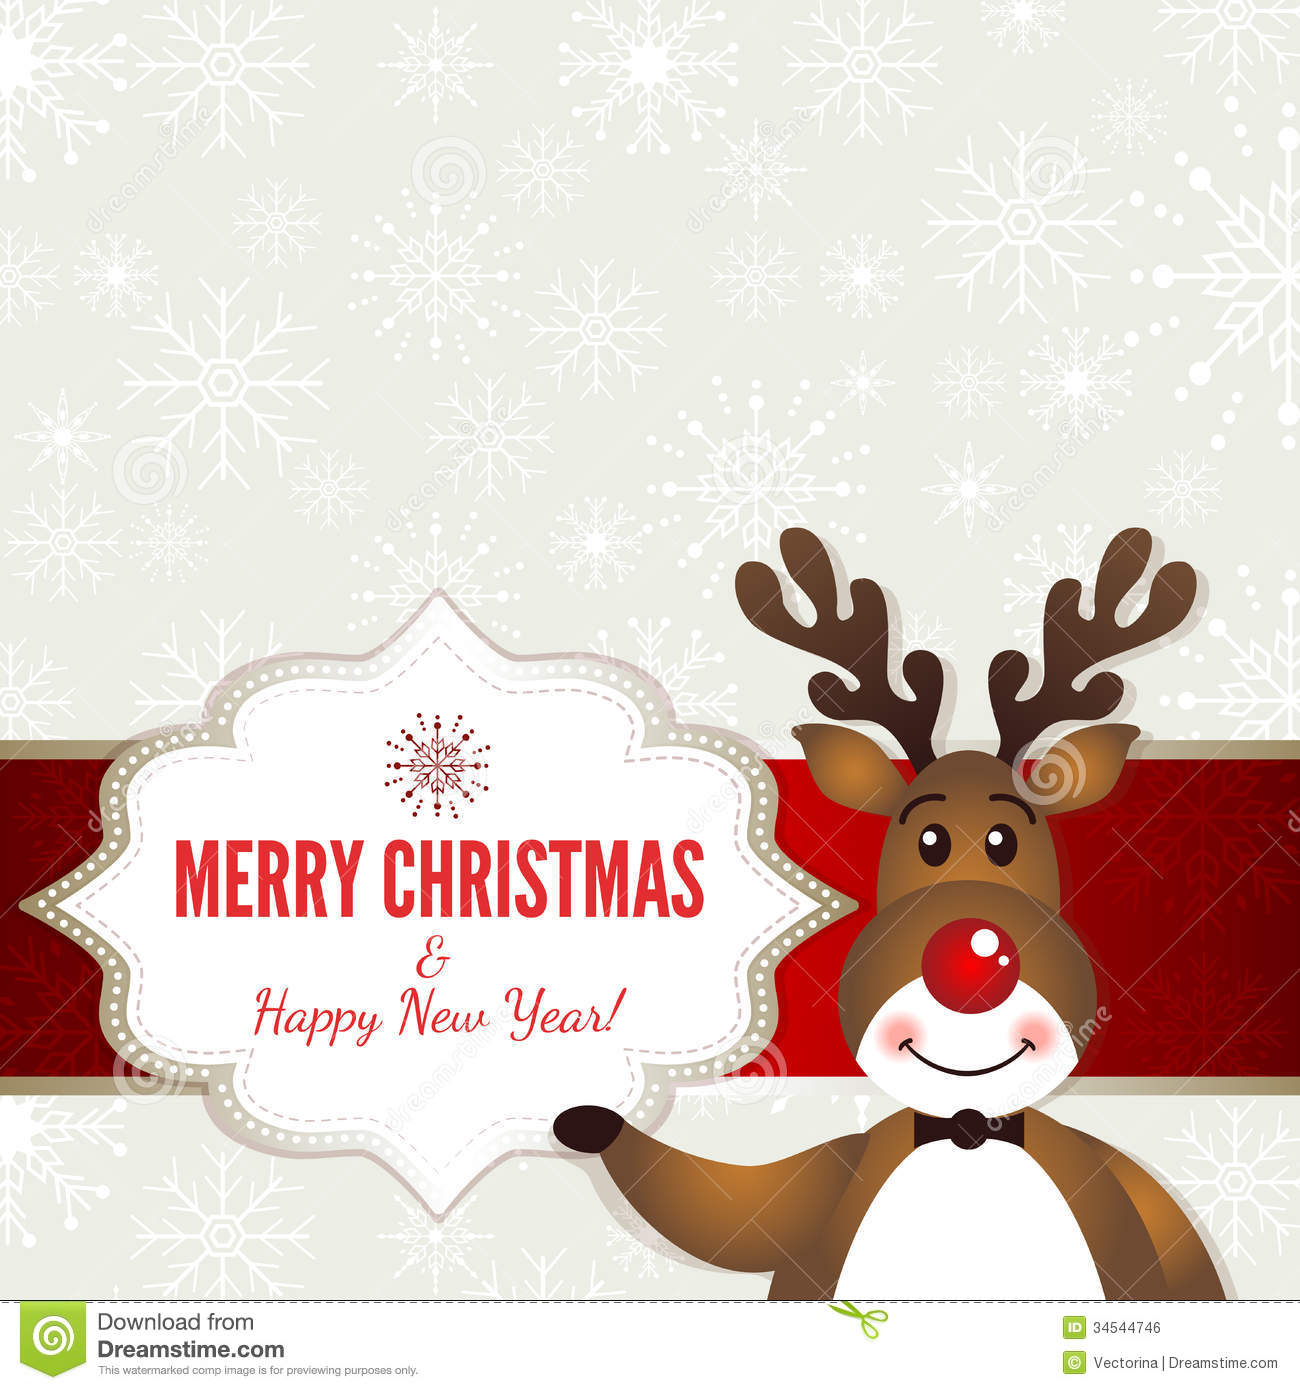 Rudolph Christmas Cartoon Banner Stock Photography - Image: 16966502